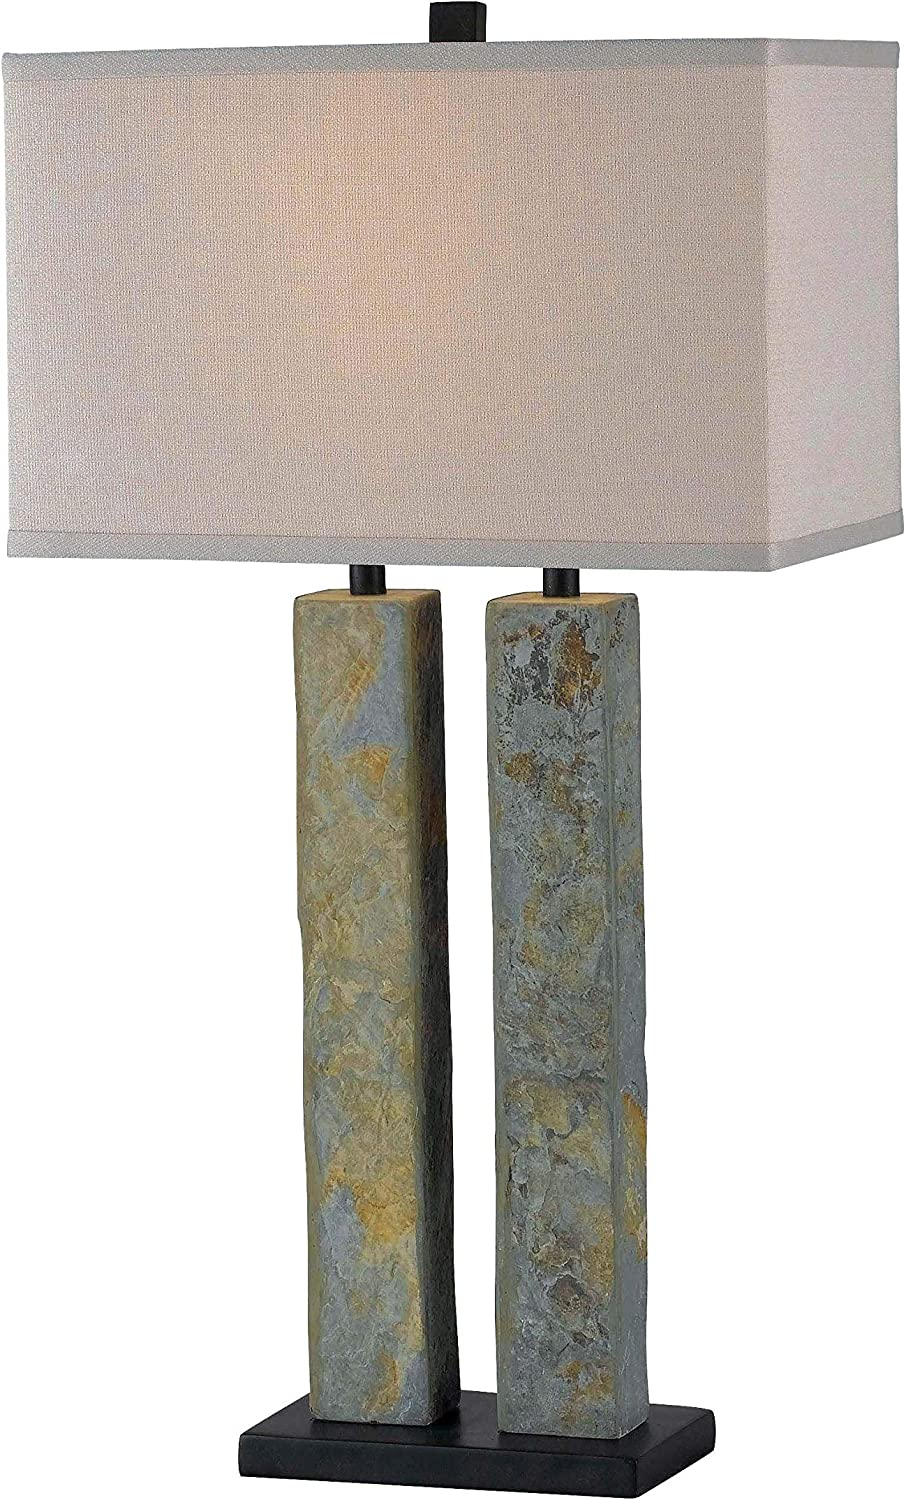 Kenroy Home Rustic Table Lamp ,30 Inch Height, 16 Inch Width,9 Inch Ext. with Natural Slate Finish